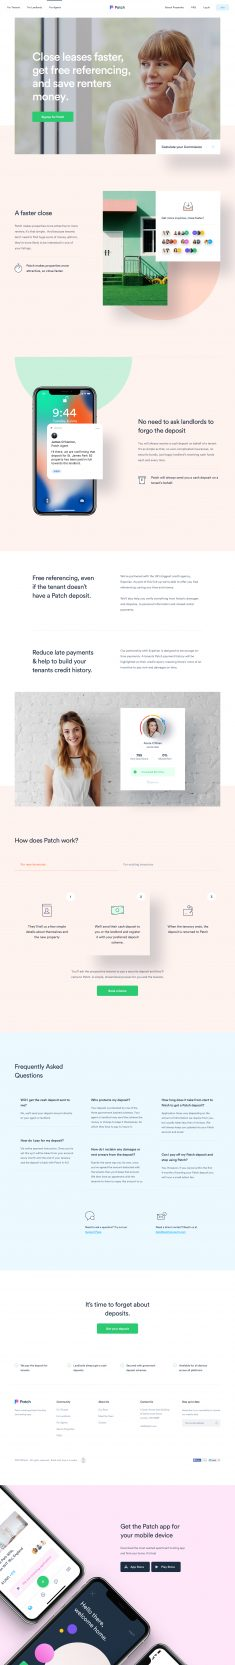 Patch – Agent Landing Page by Filip Justić